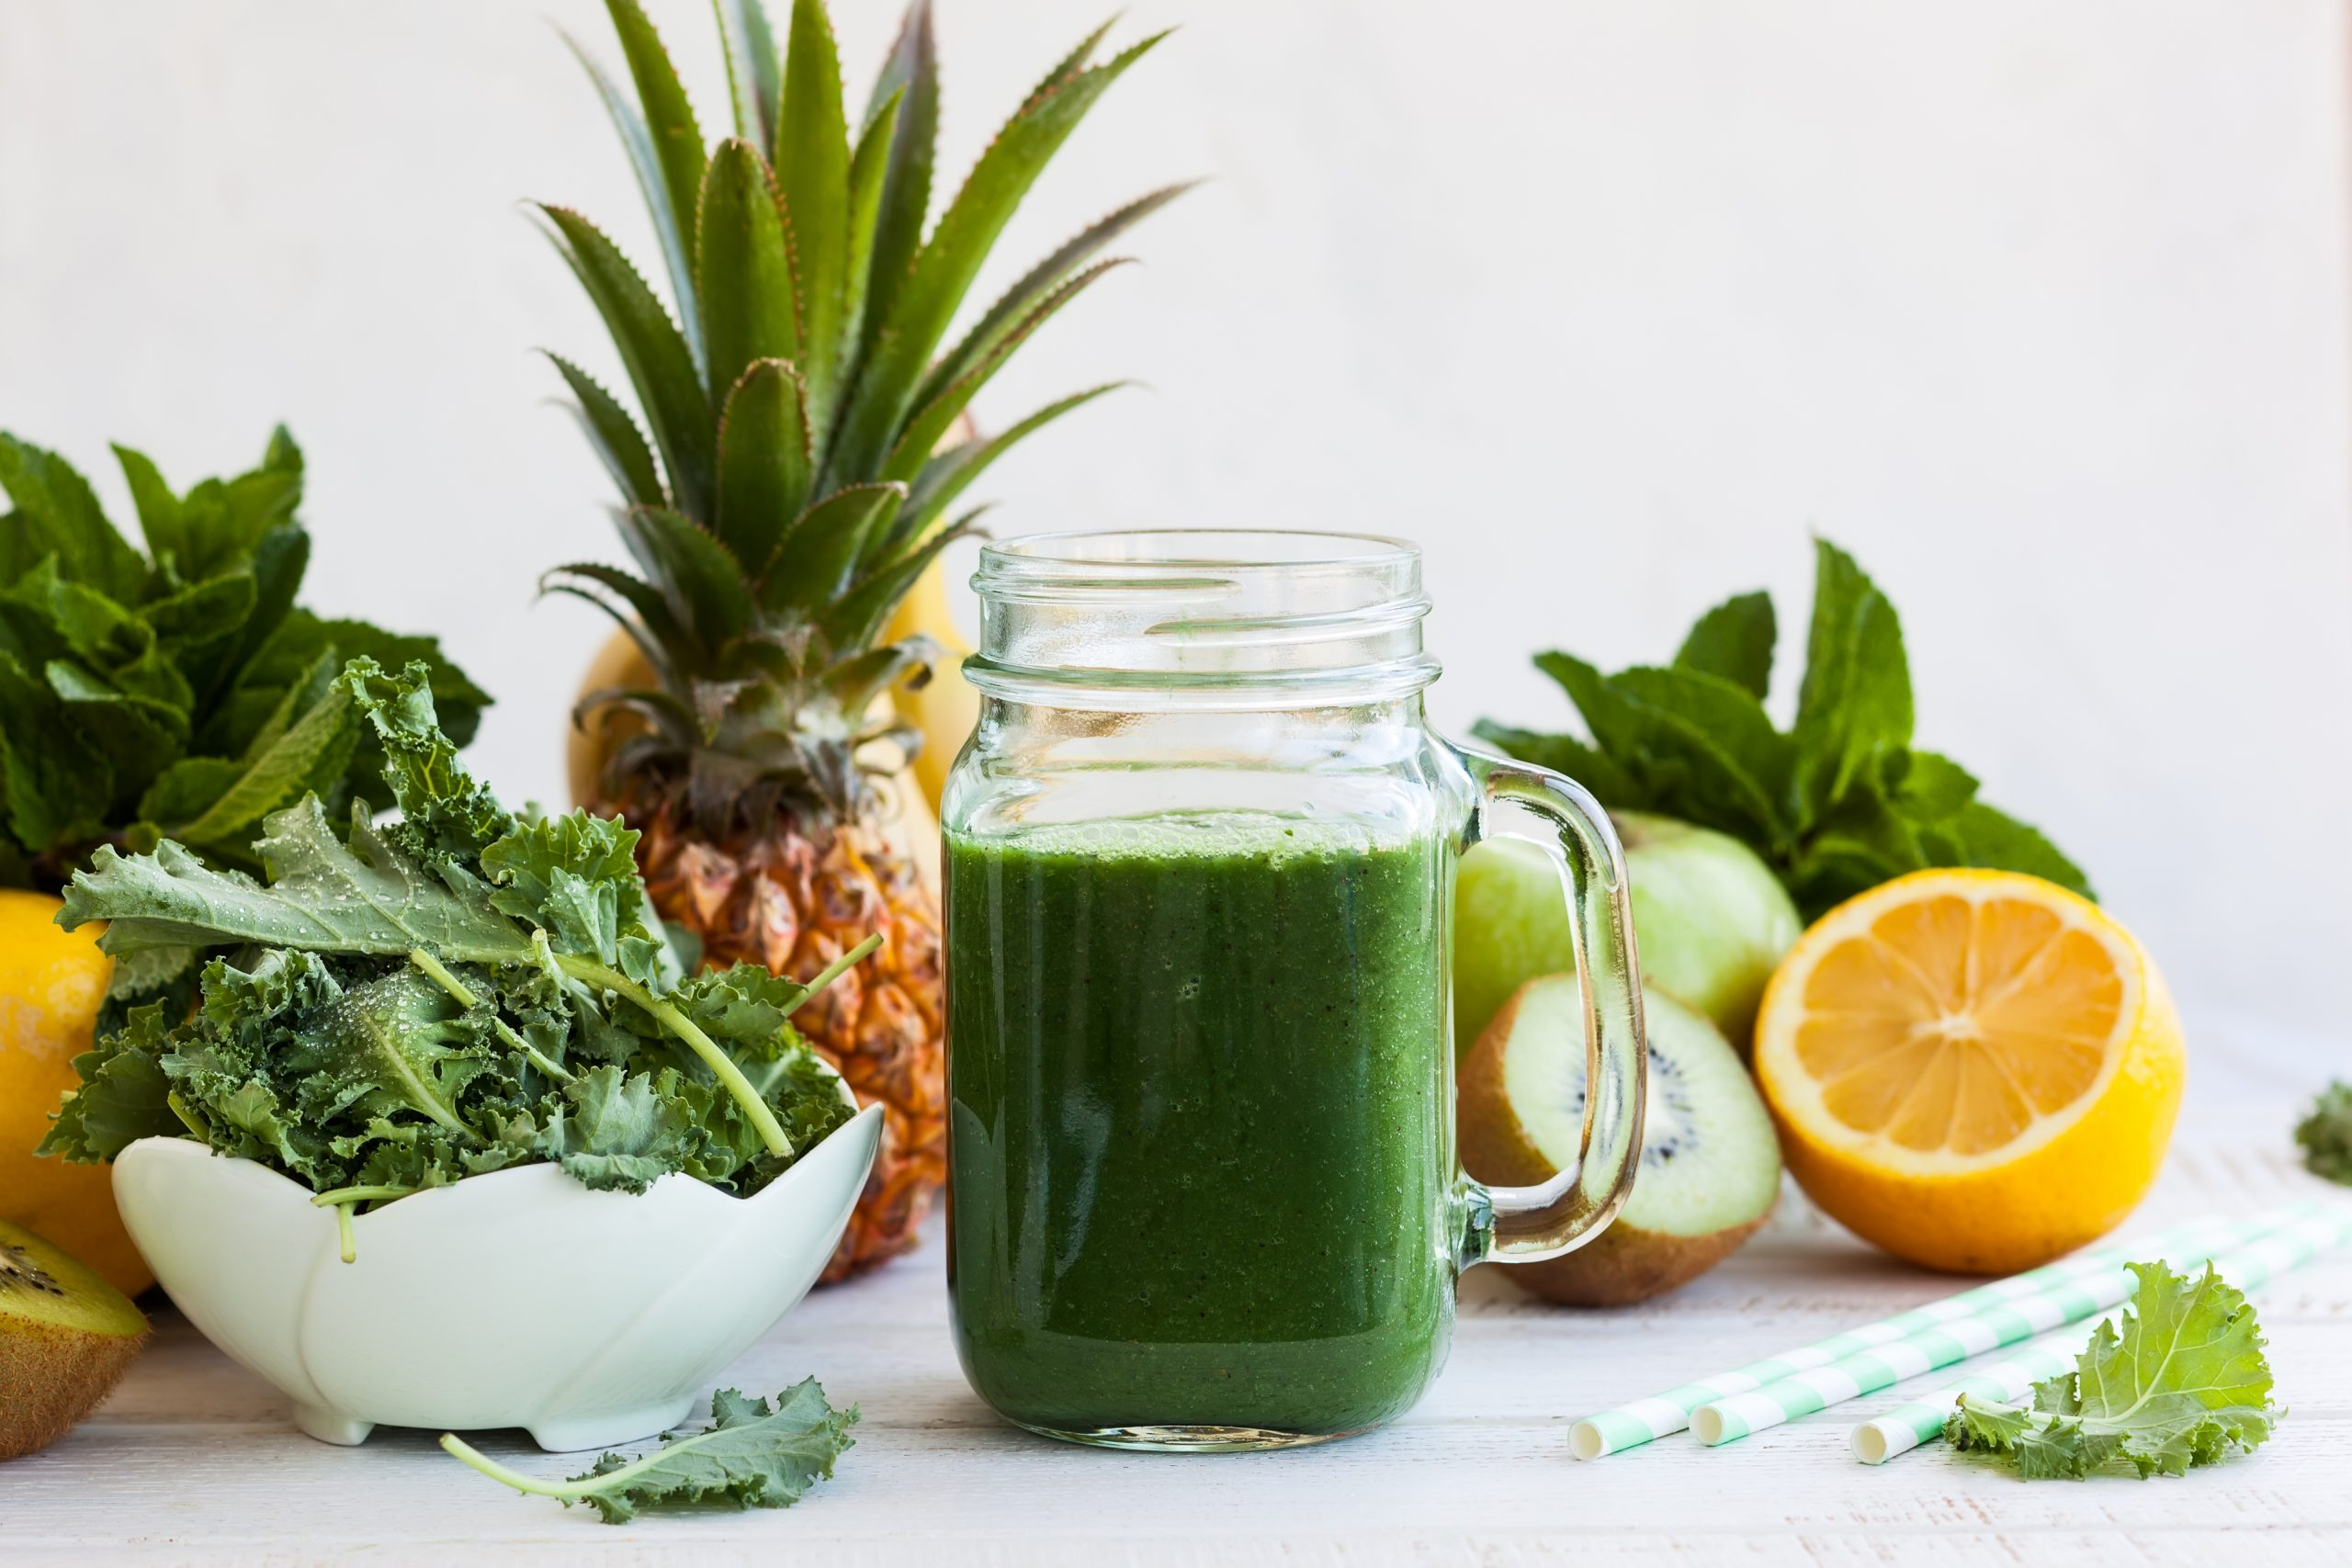 Kale Pineapple immunity boosting juice